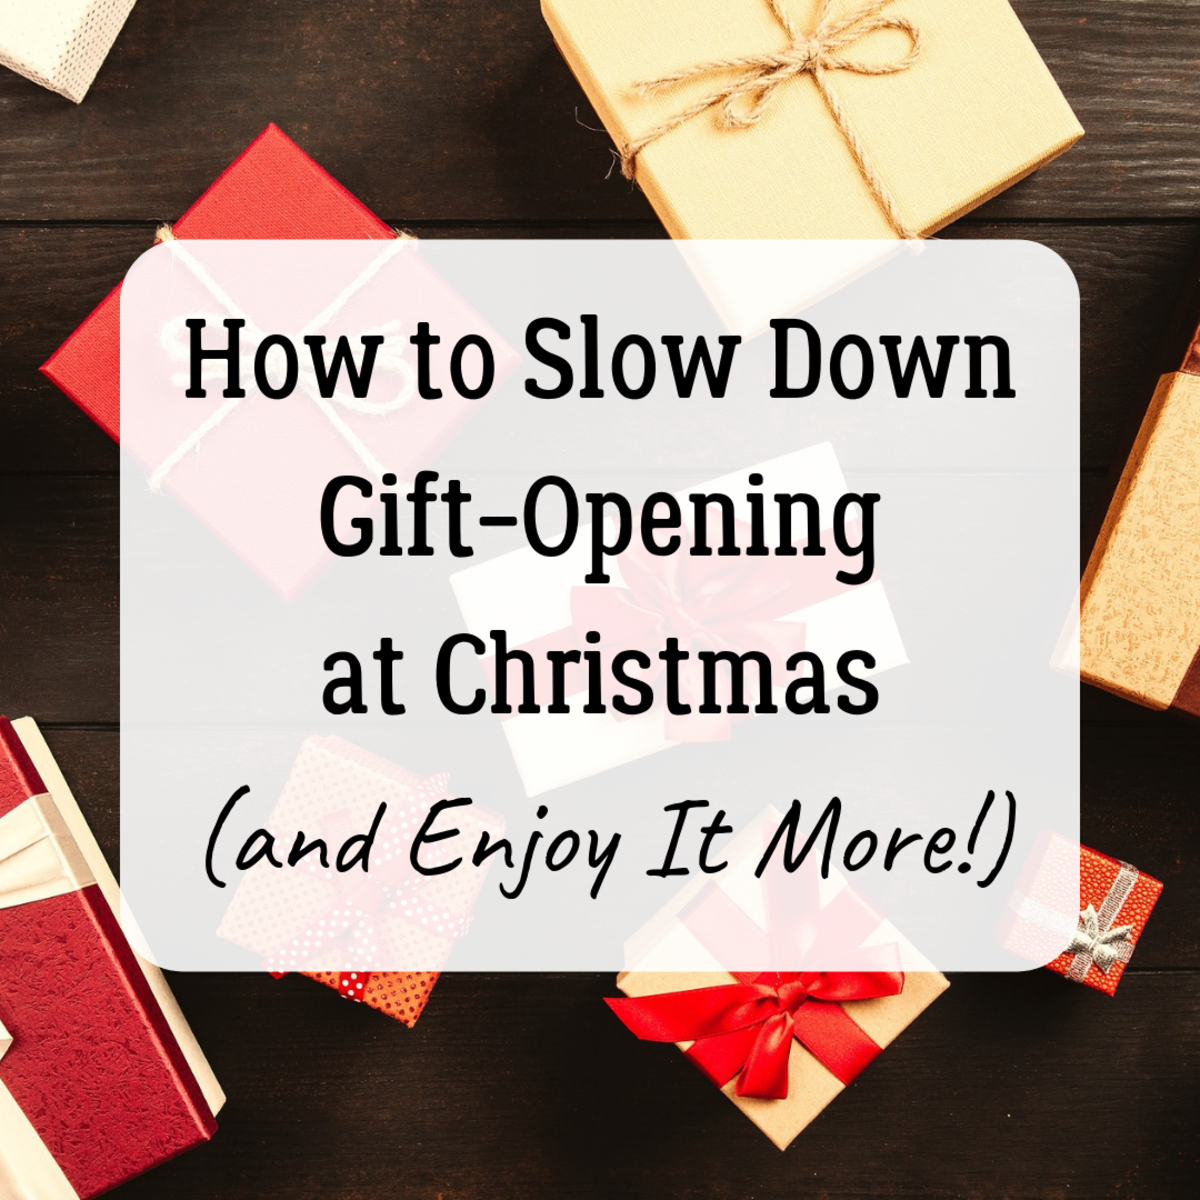 If your family rushes through their presents at Christmas, try these strategies for slowing down and enjoying the act of opening gifts.